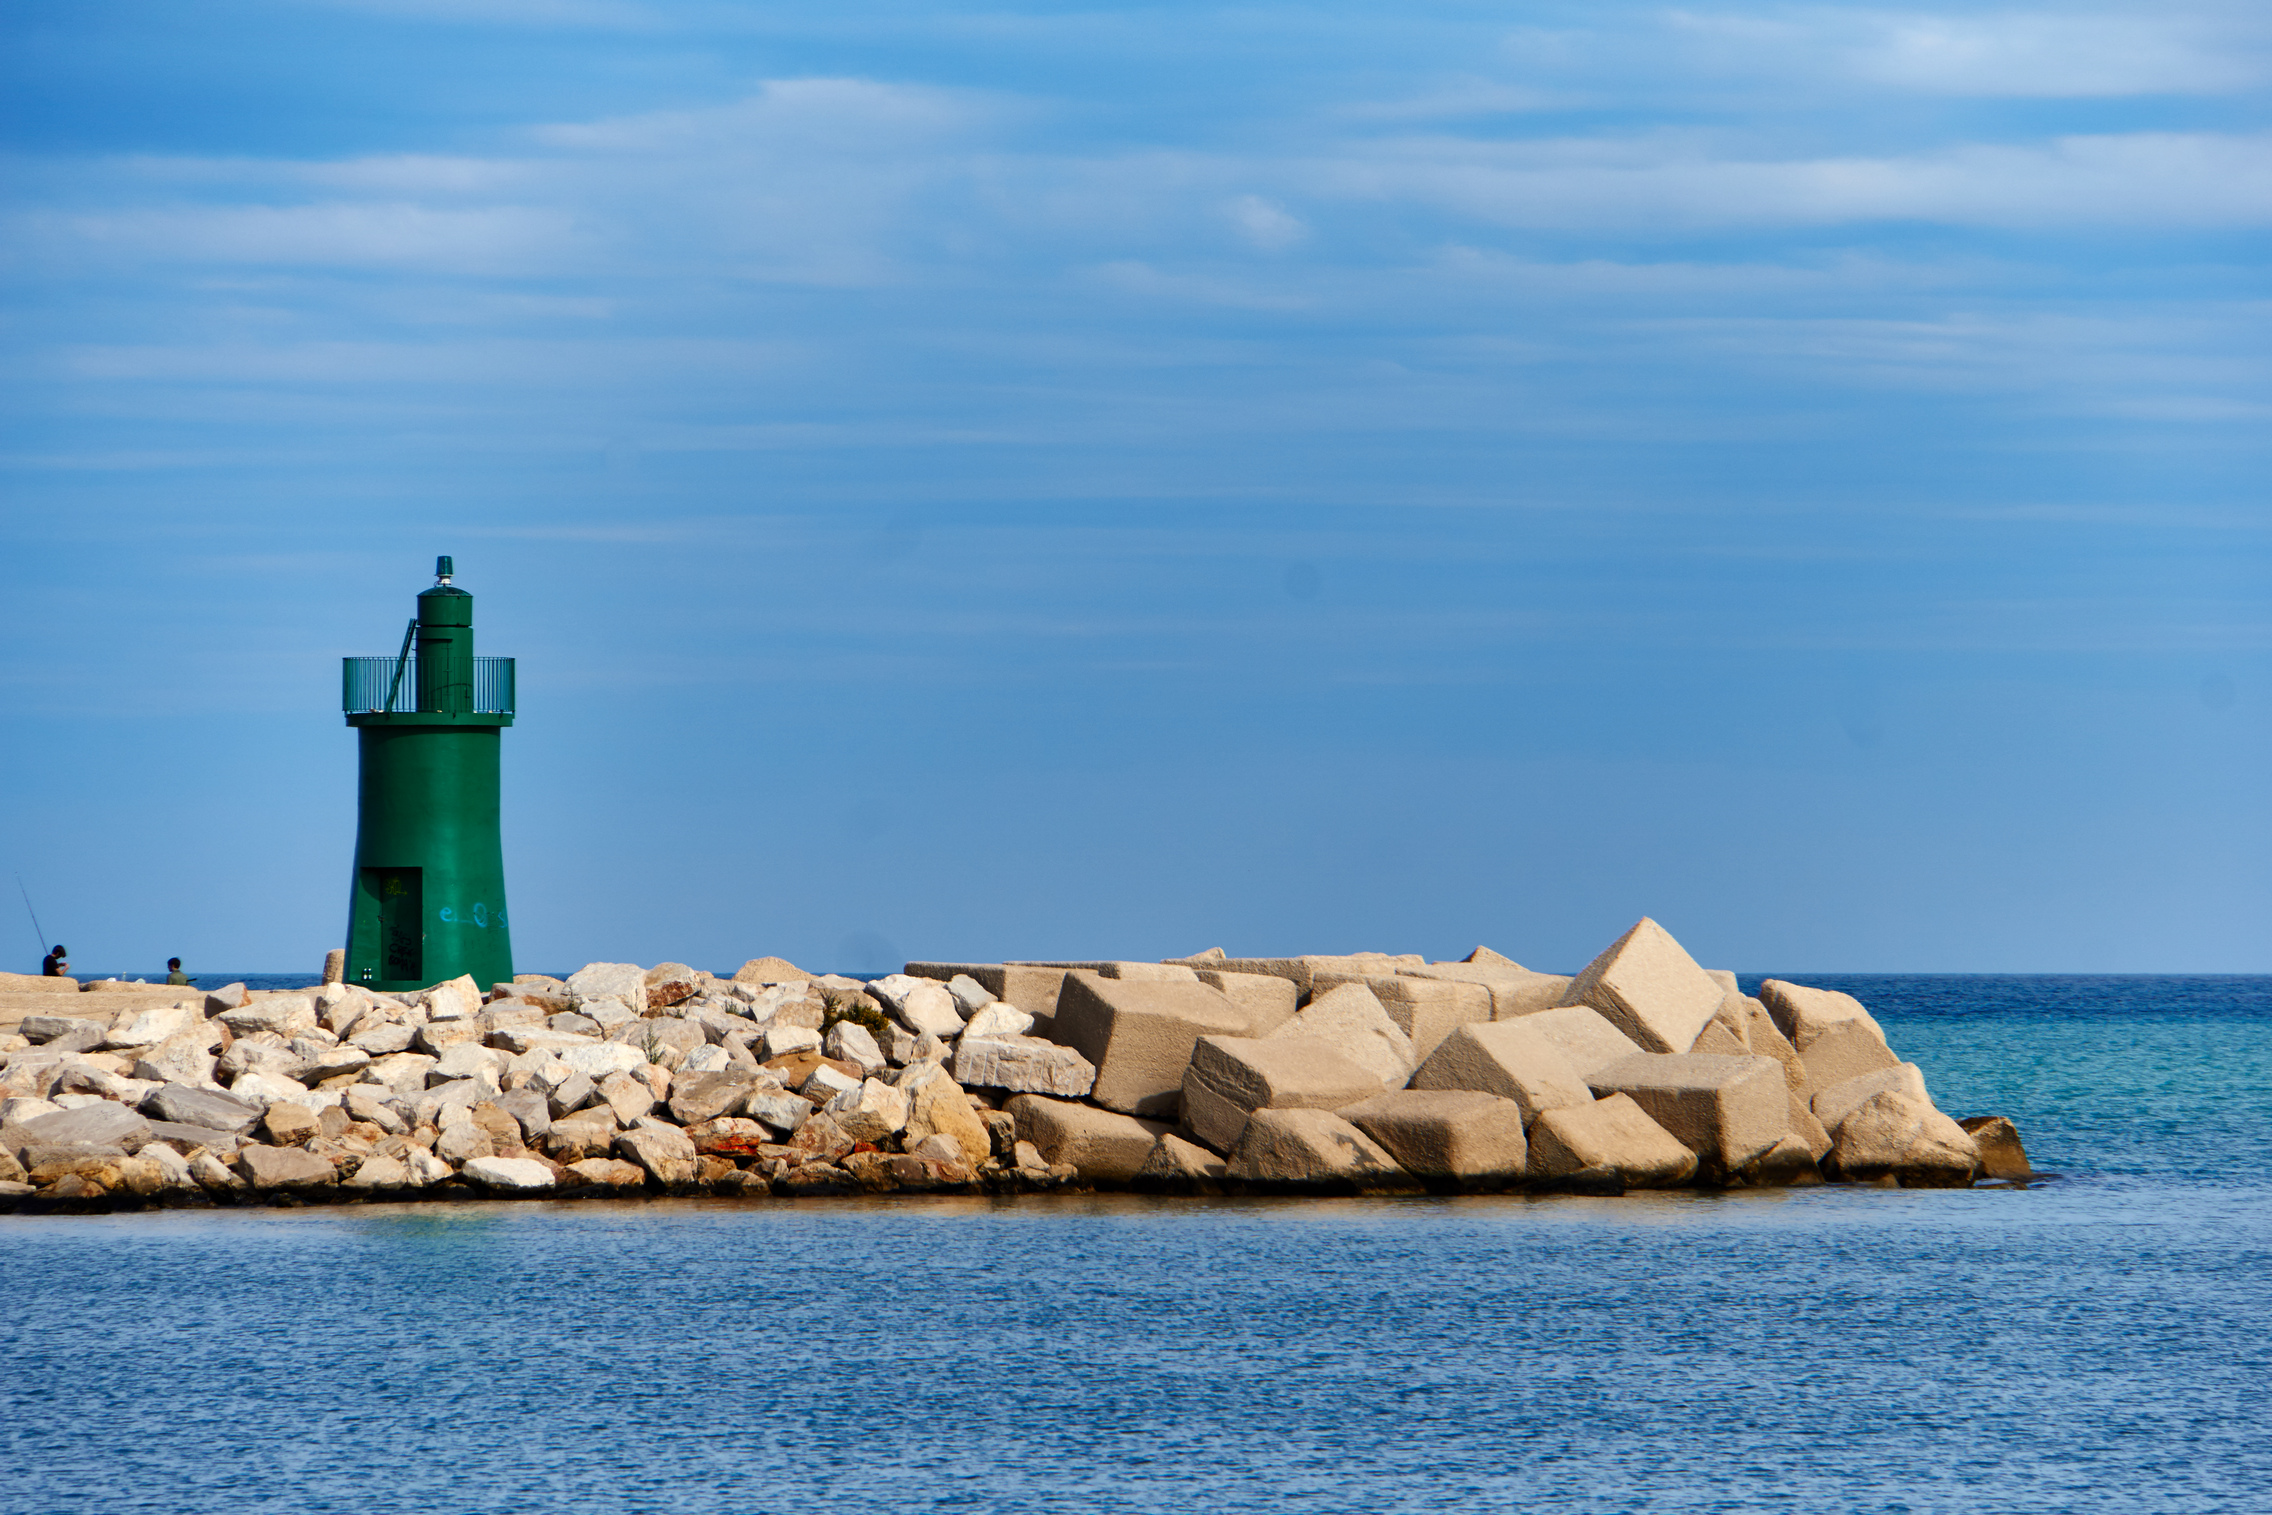 The green lighthouse...